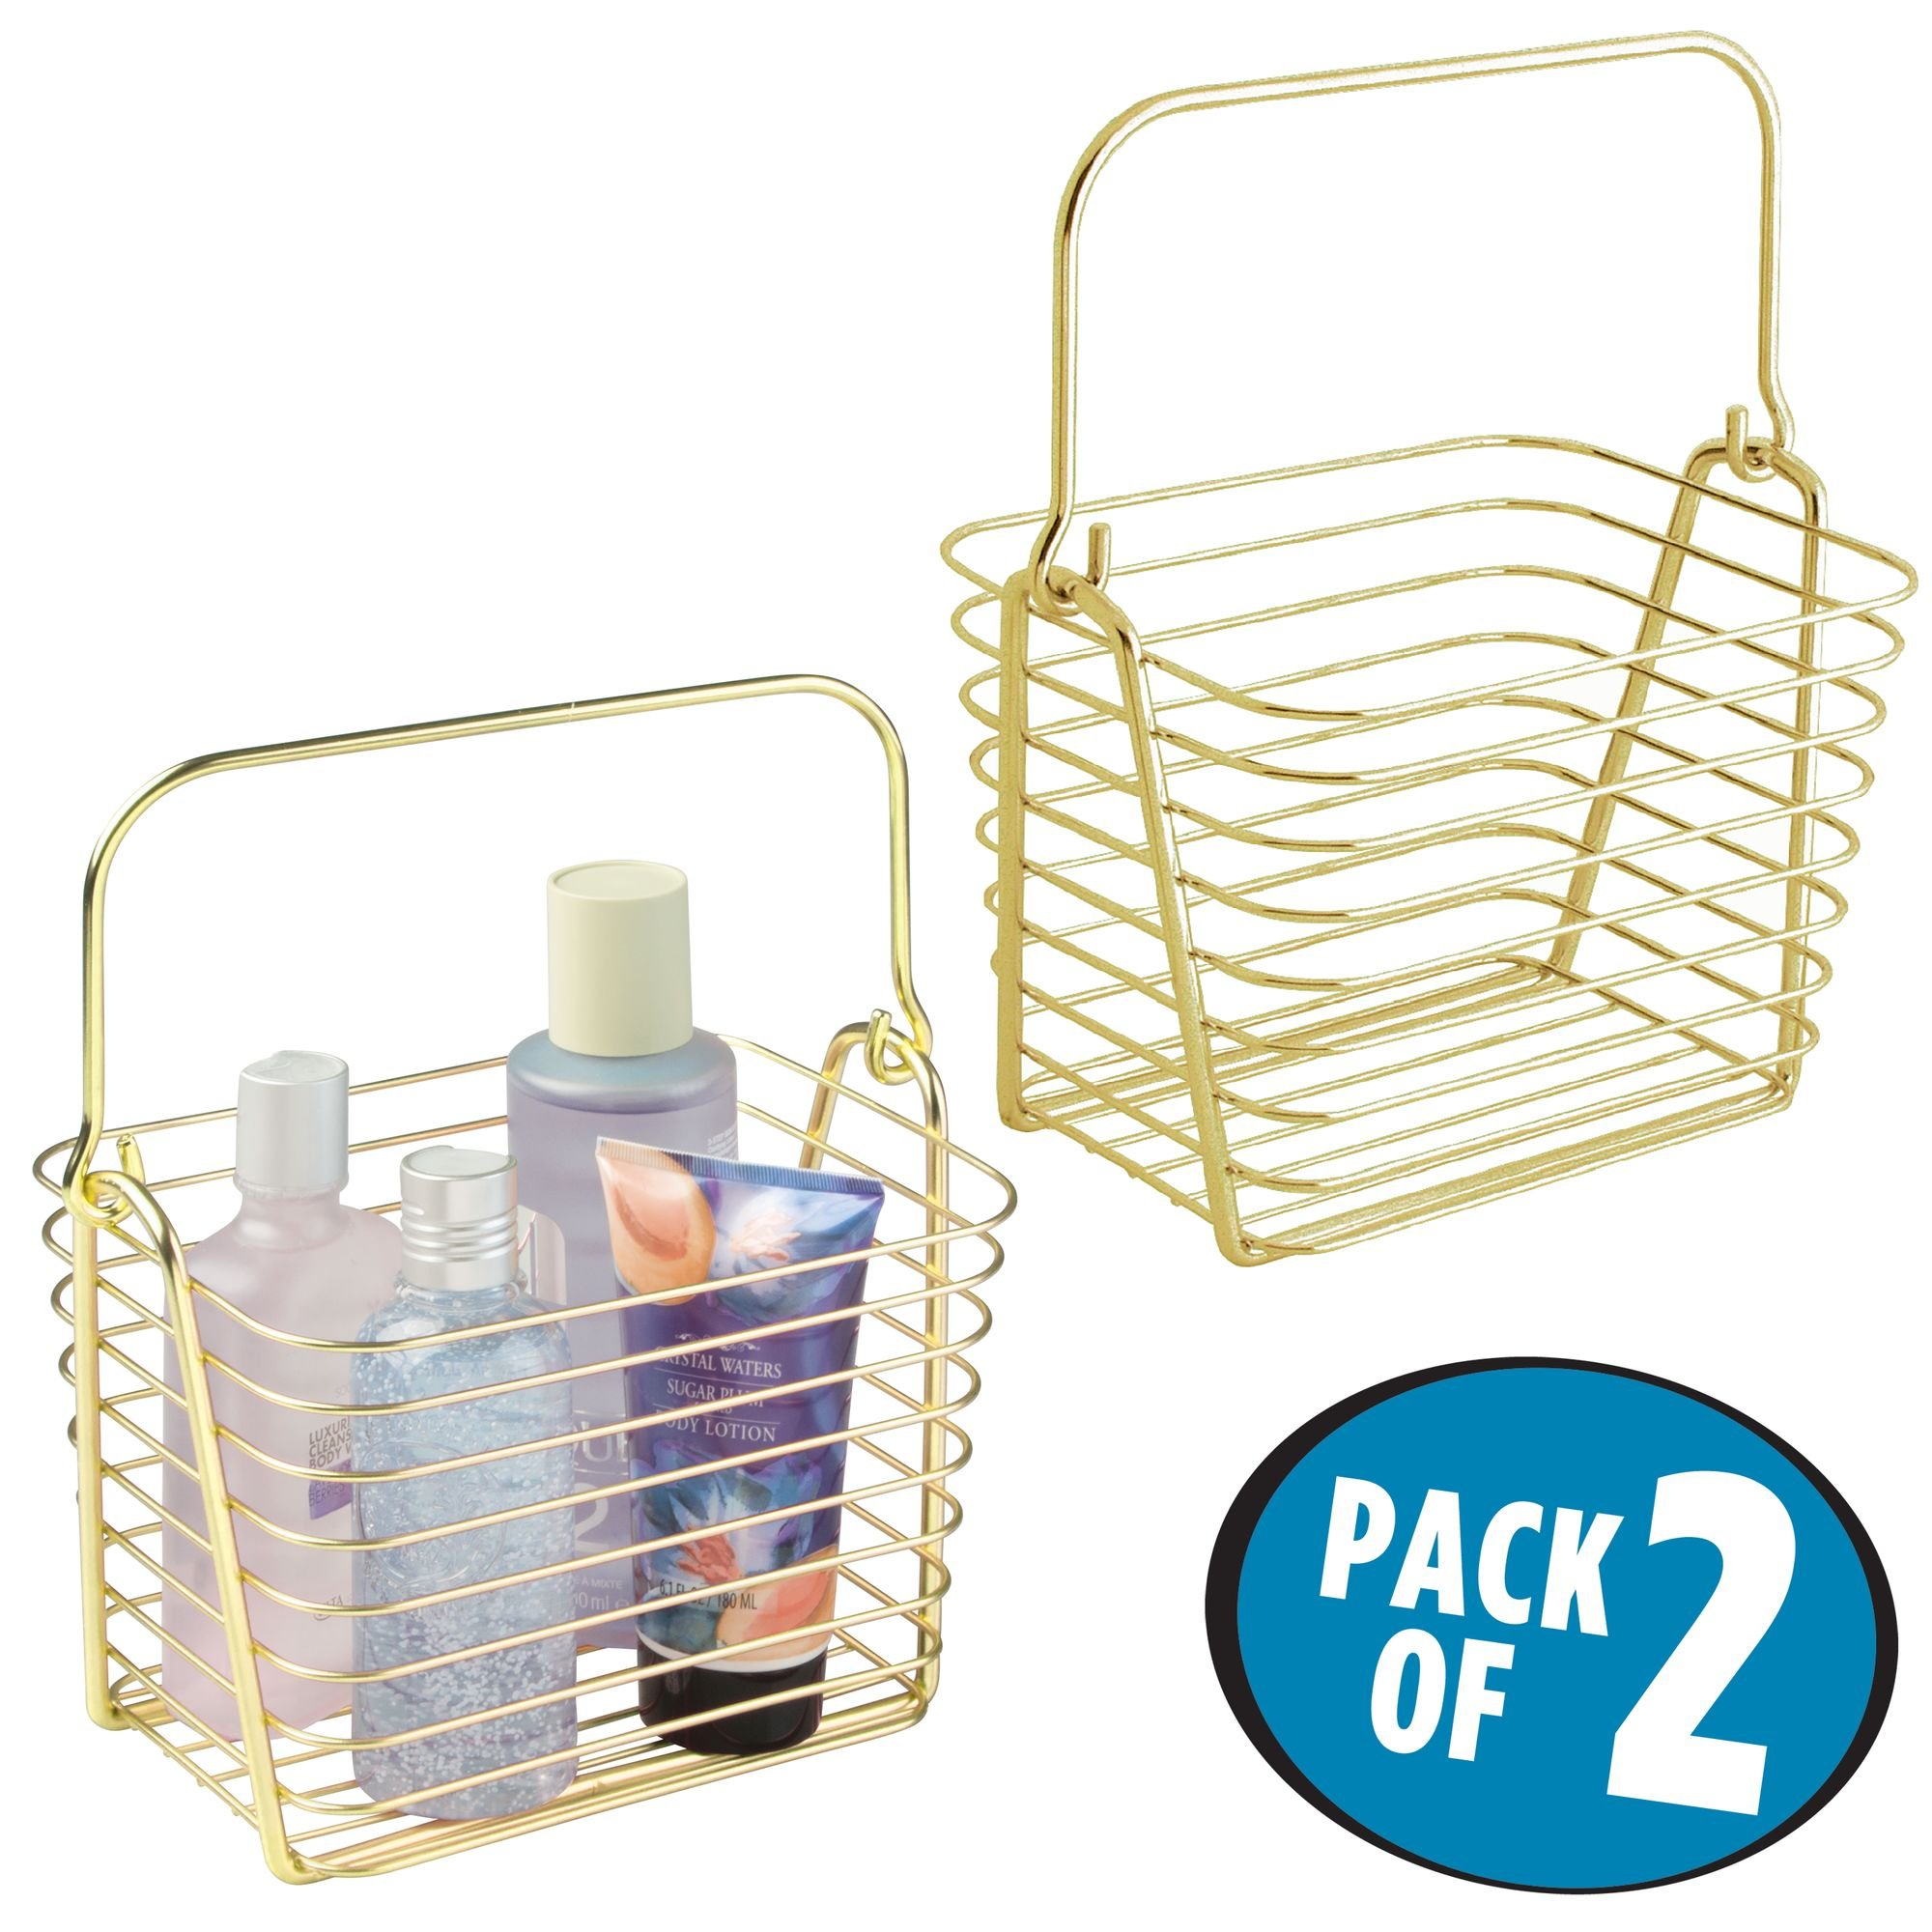 mDesign Storage Basket Bin with Built-in Handle, Caddy for Organizing Hand Soaps, Body Wash, Shampoos, Lotion, Conditioners, Hand Towels, Hair Accessories, Body Spray - Small, Pack of 2, Gold/Brass